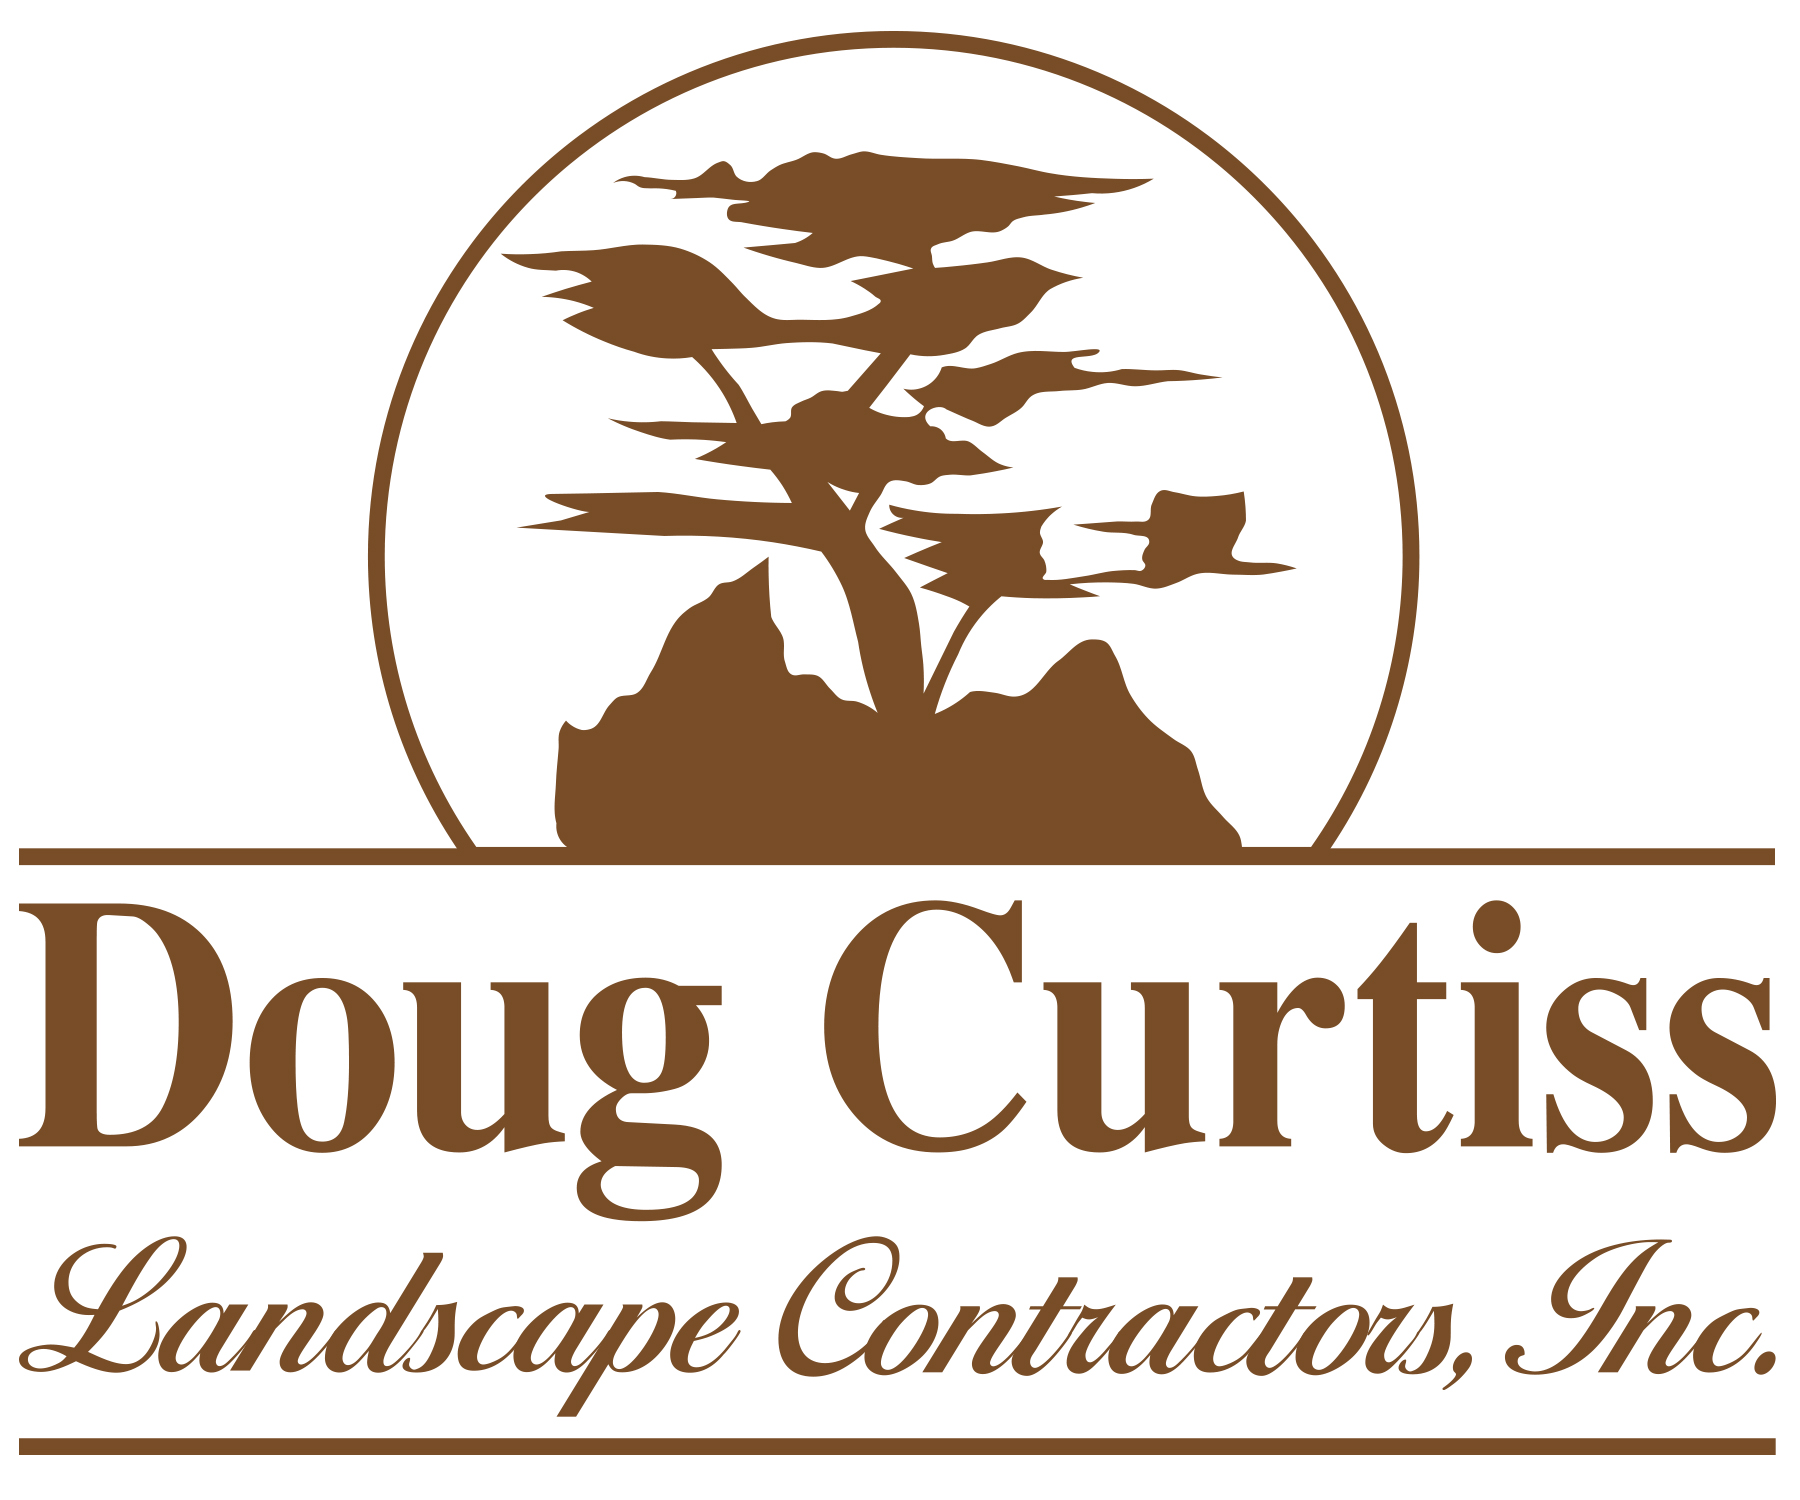 Doug_Curtiss_Lanscape_Contractors_Inc-Logo-Circle-JPG-WHITE-format.jpg